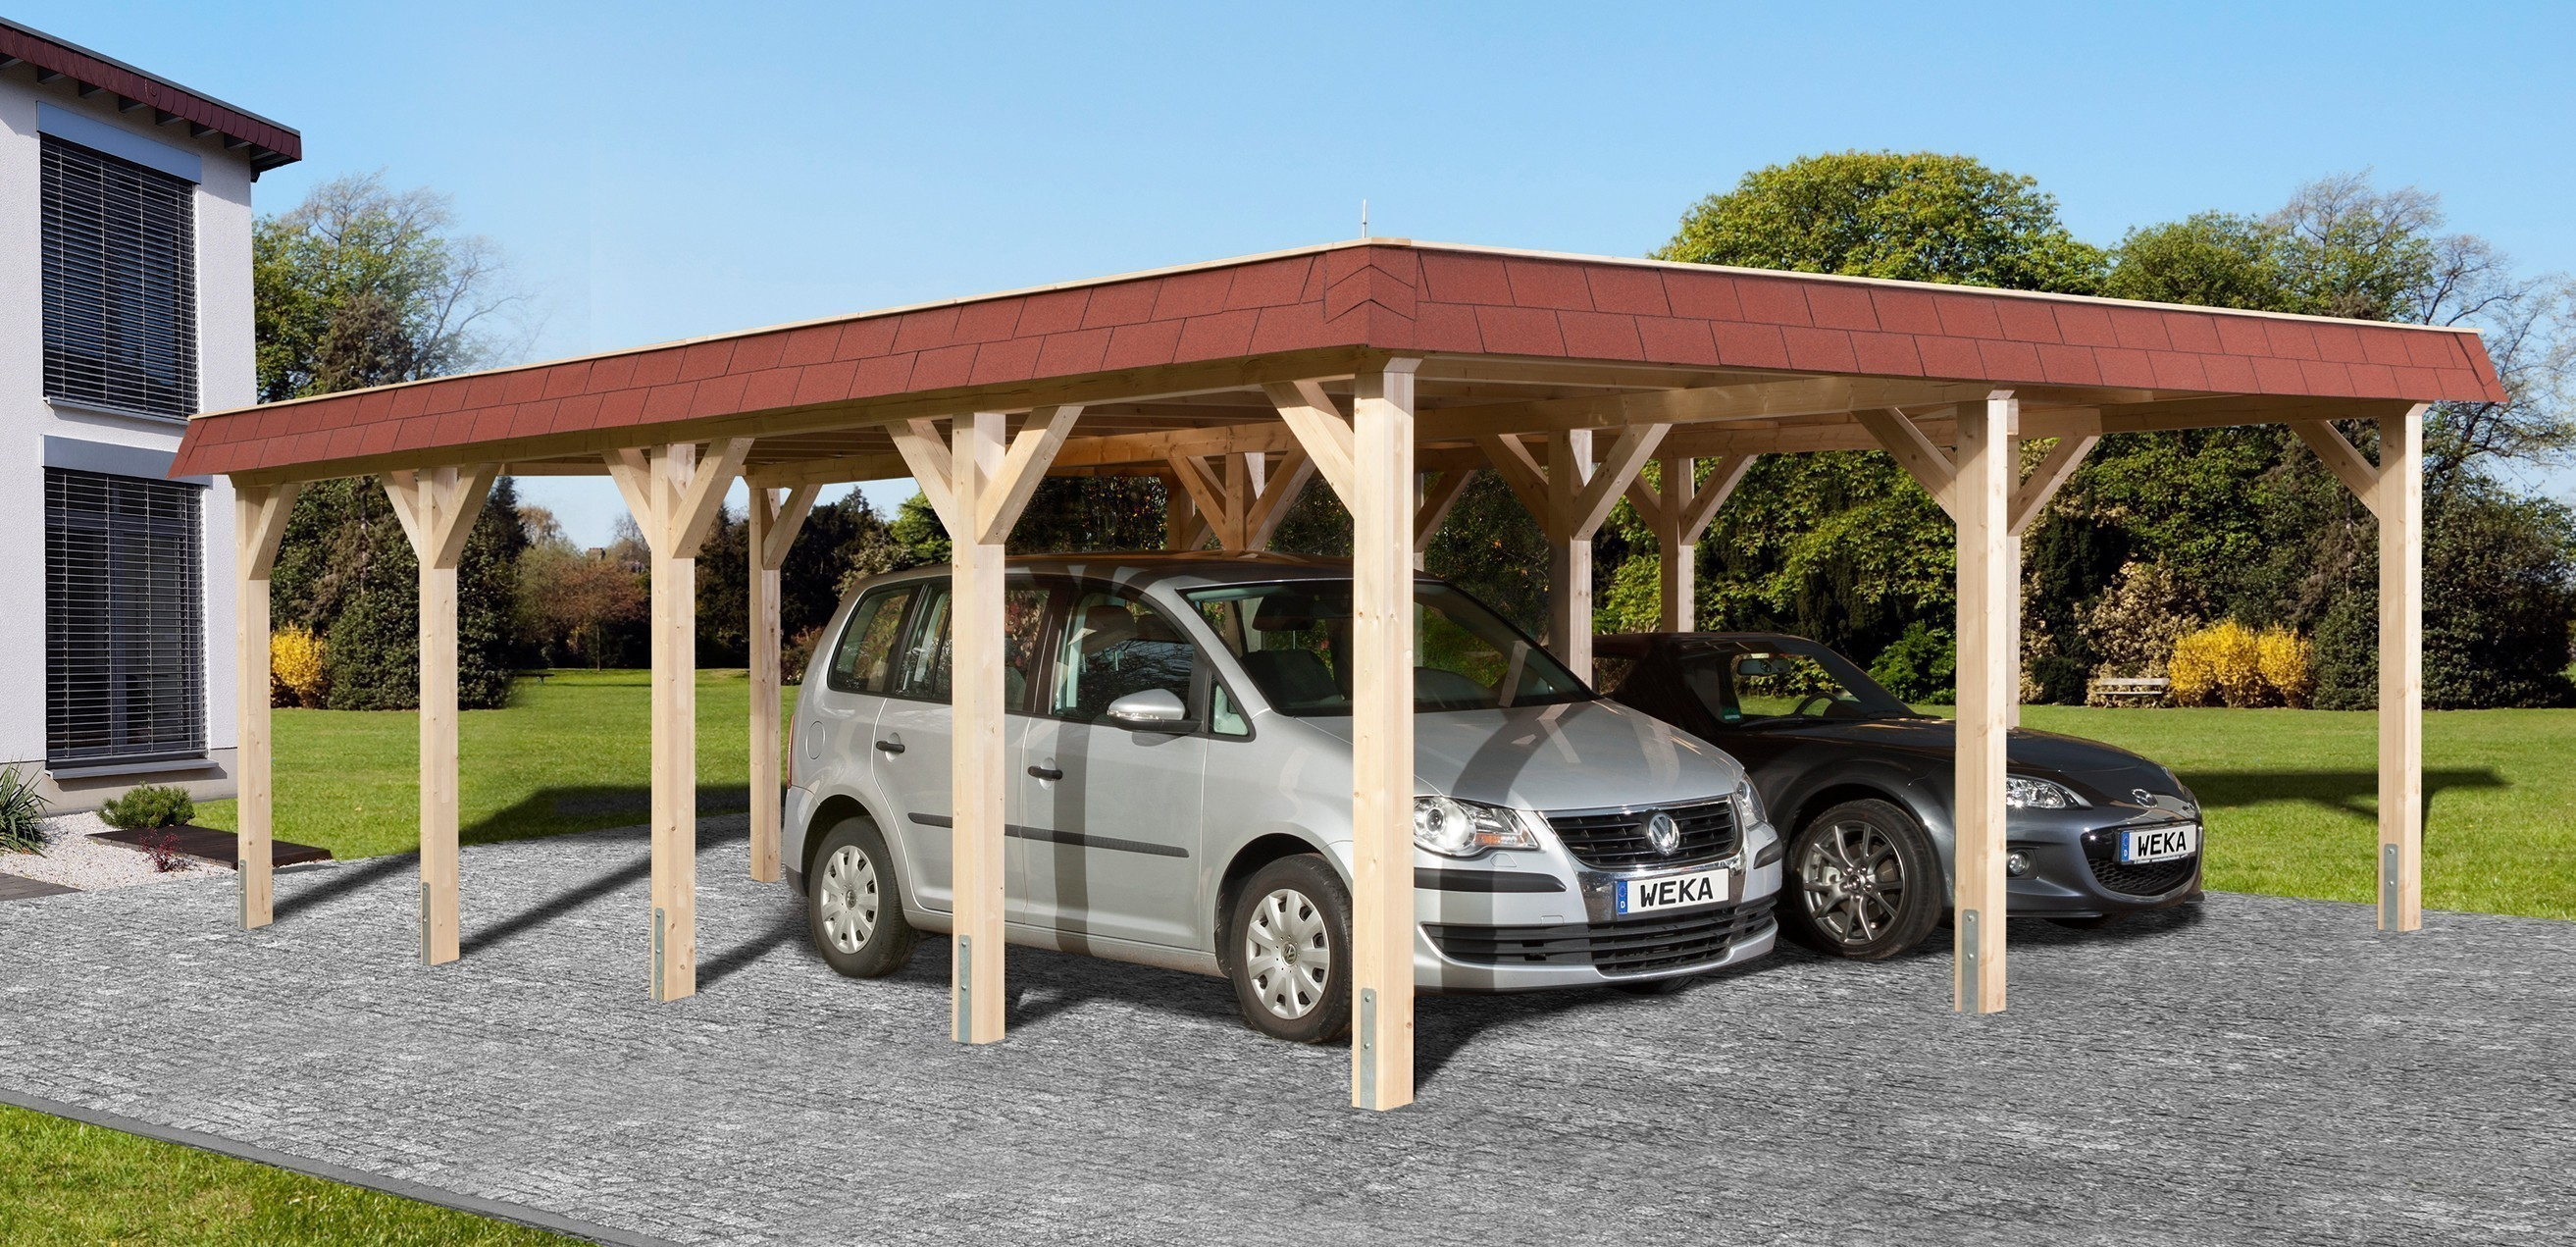 weka carport doppelcarport leimholz 615 gr 2 flachdach 622x832cm bei. Black Bedroom Furniture Sets. Home Design Ideas